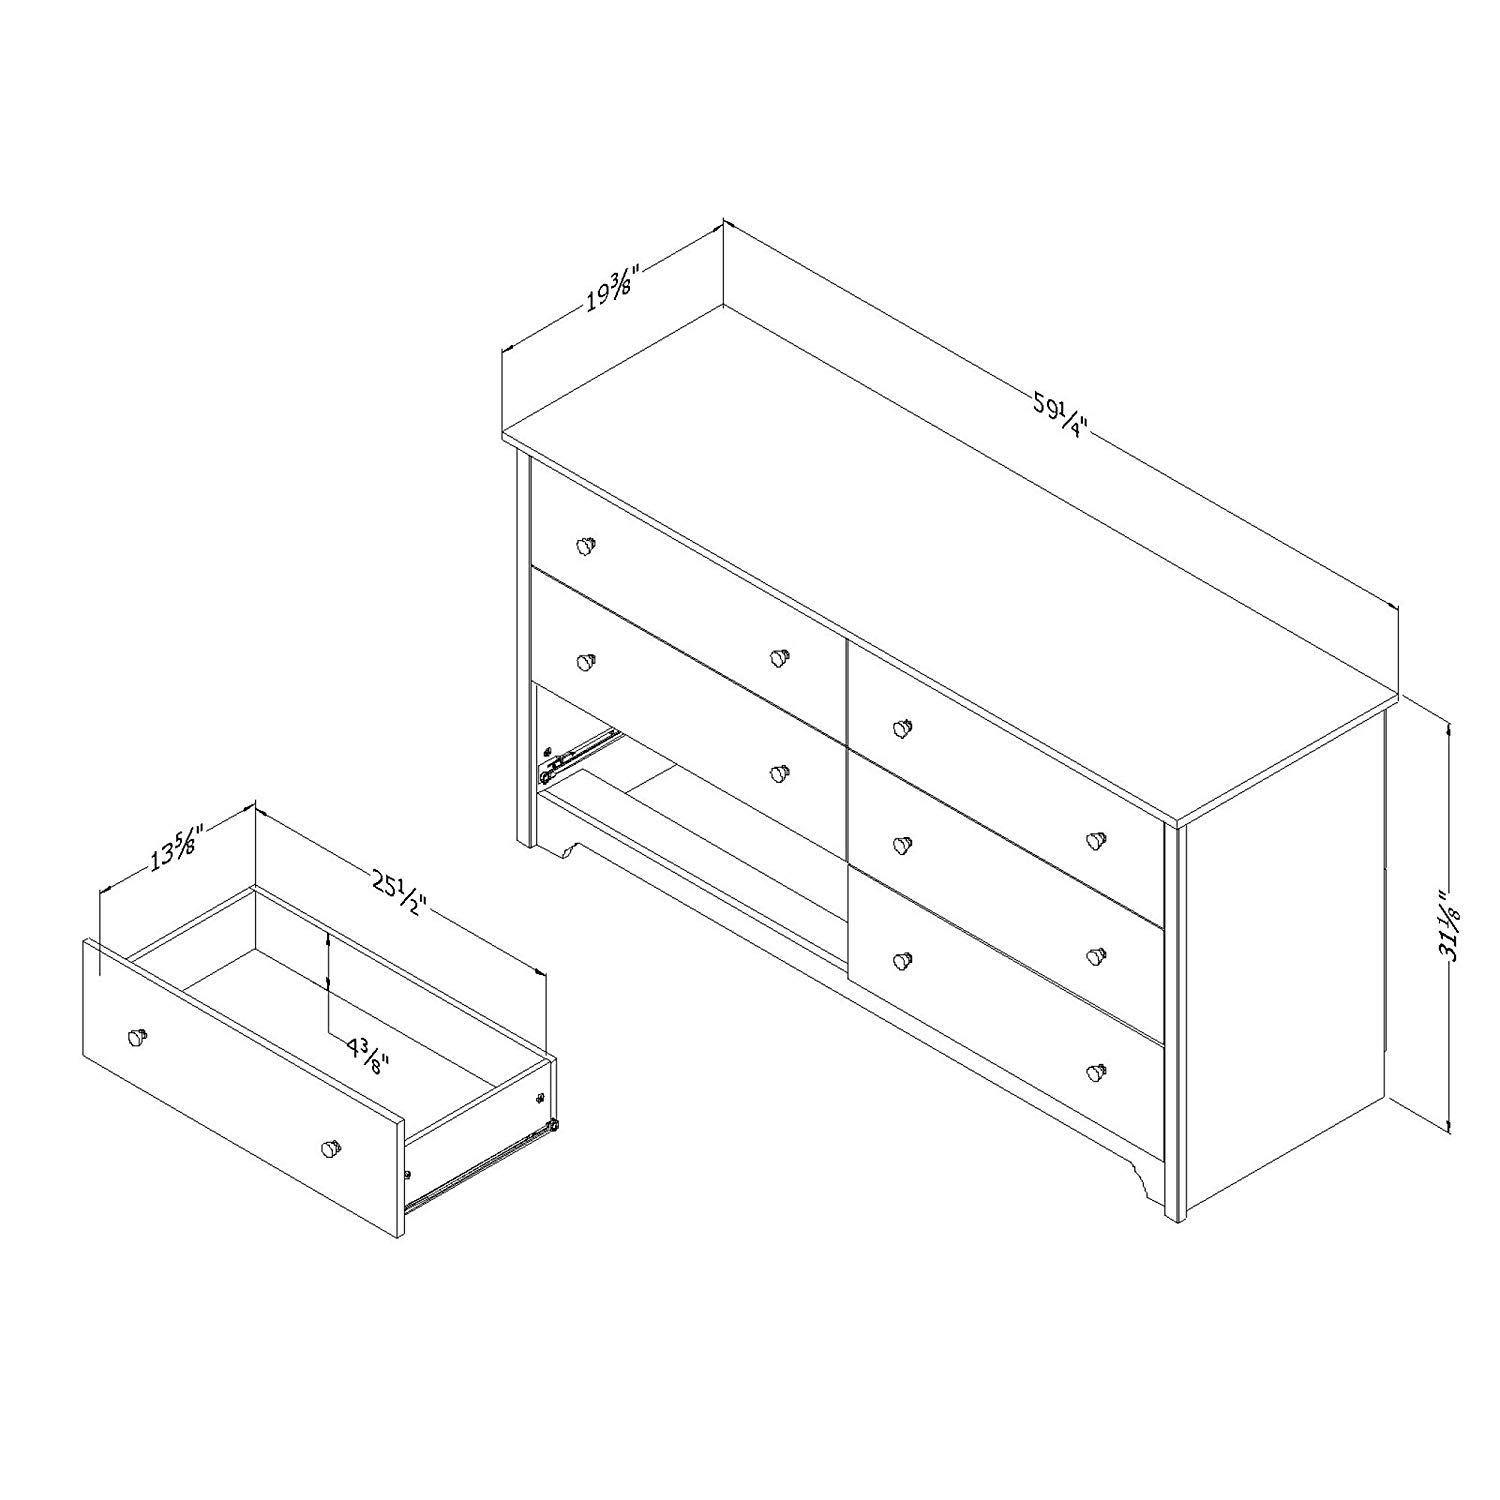 South Shore 6-Drawer Double Dresser diamension